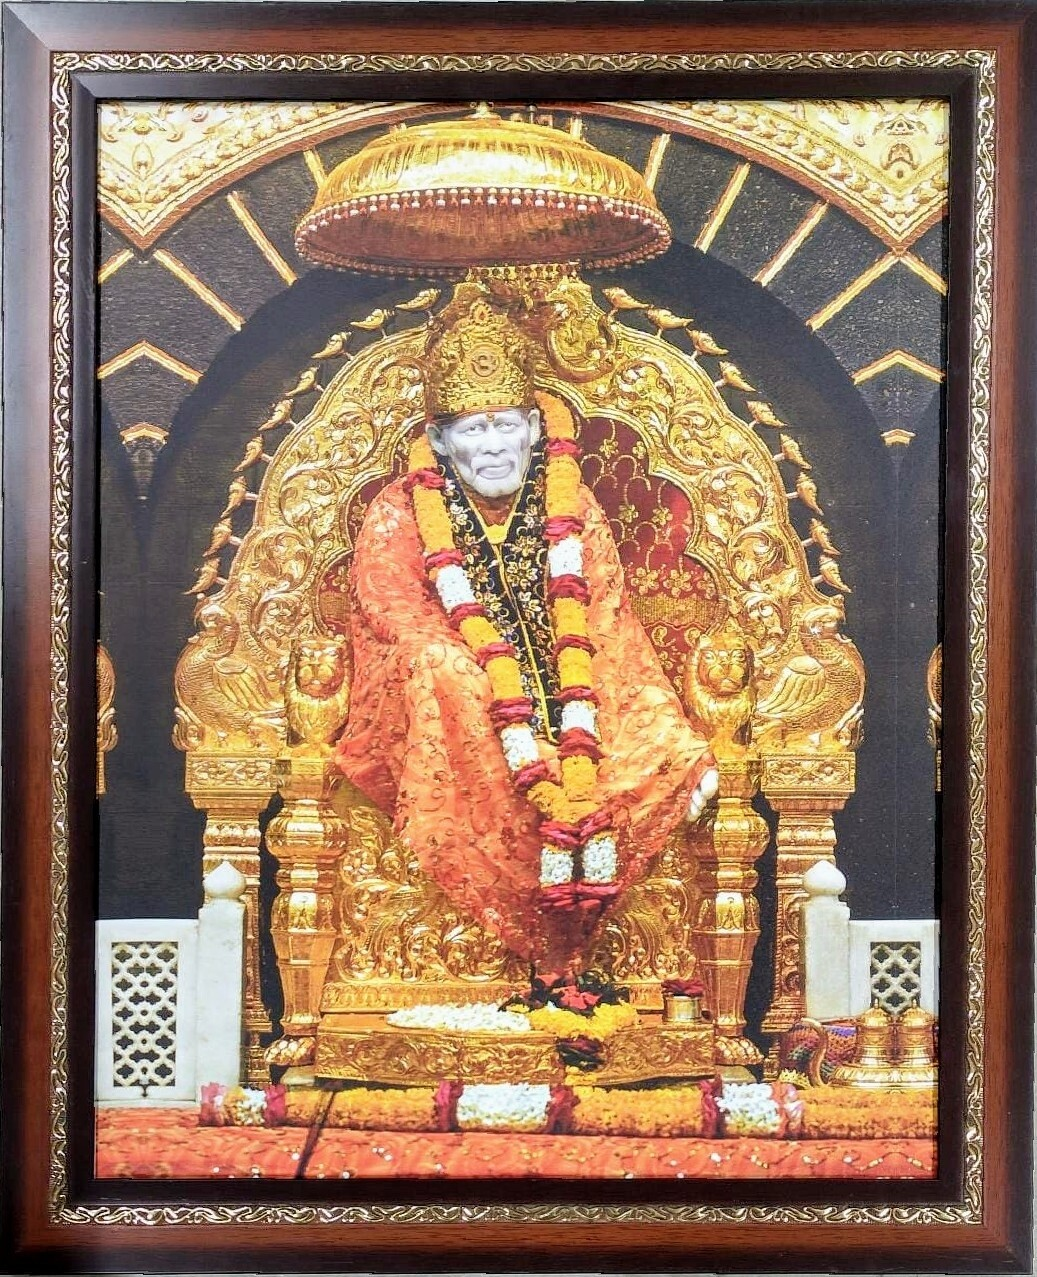 Lord Saibaba Photo Frame - Gold color lining